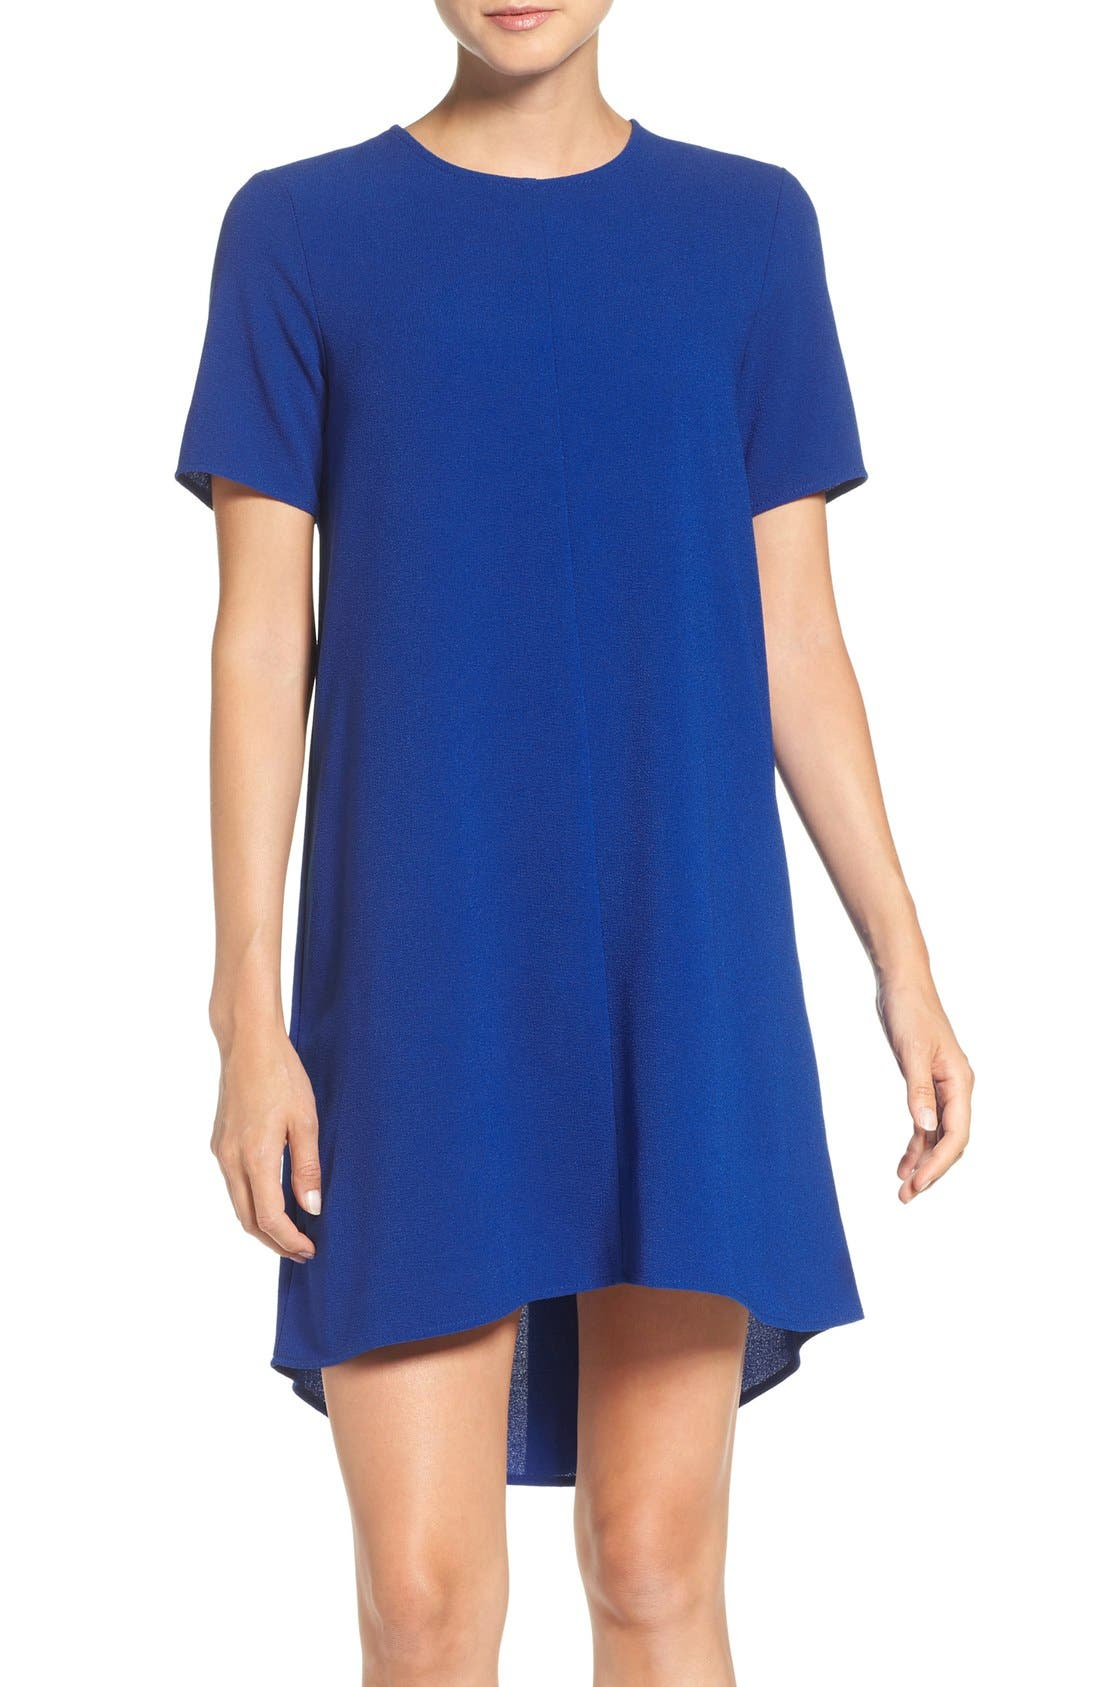 Alternate Image 1 Selected - Charles Henry Crepe Trapeze Dress